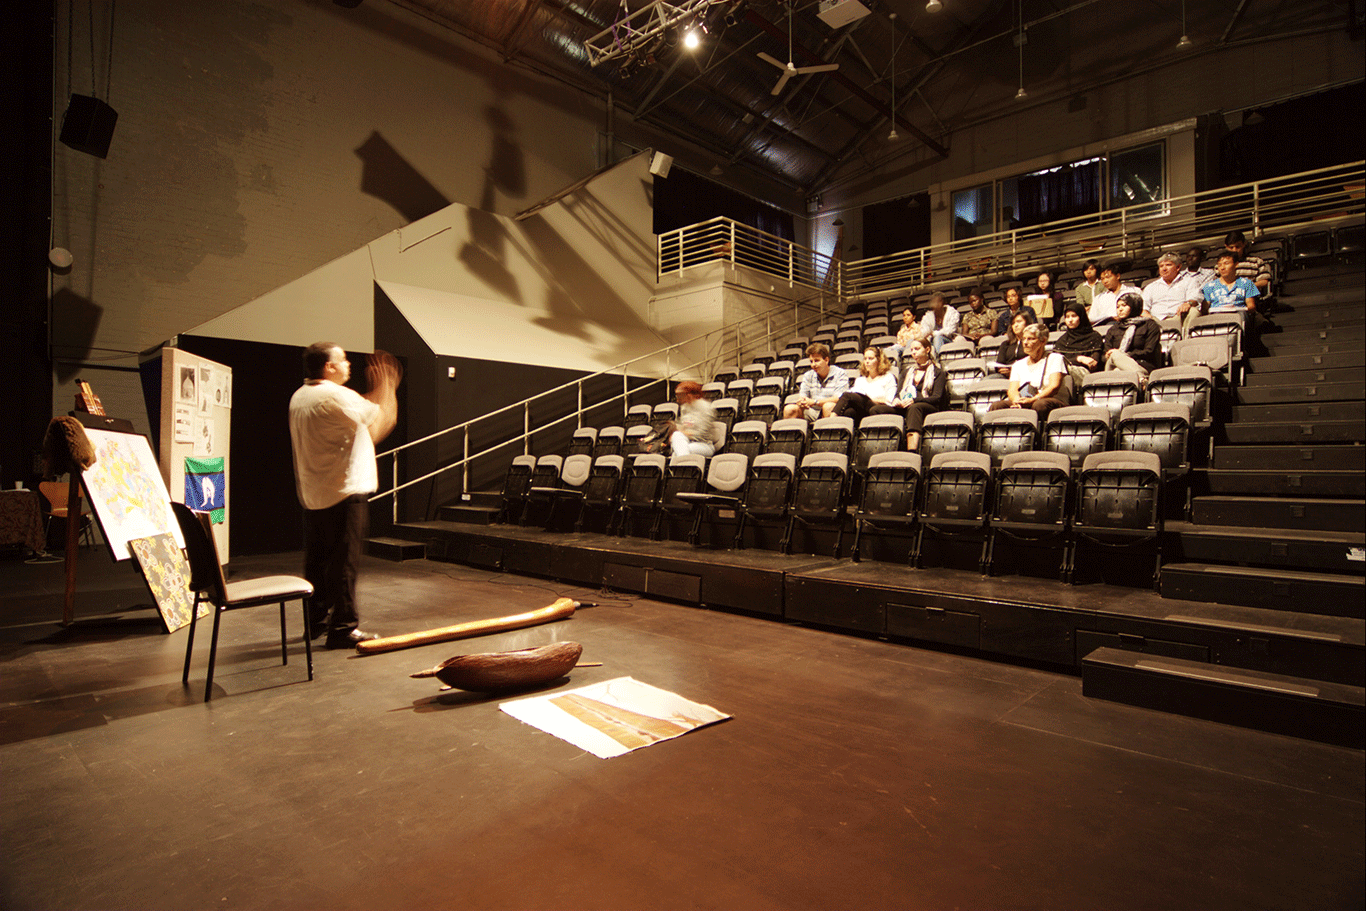 147-tiered-seated-theatre